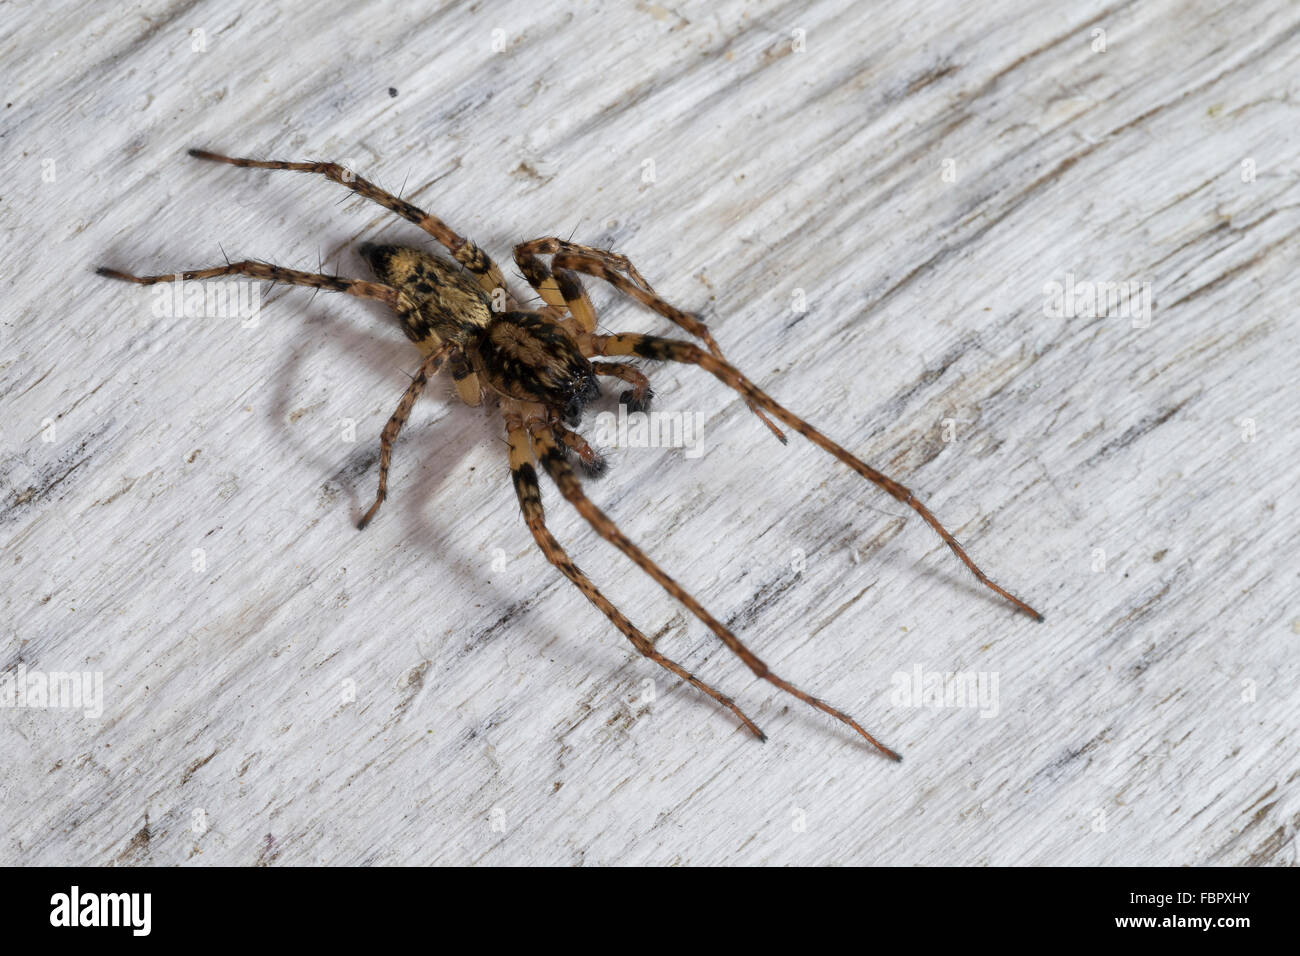 Buzzing Spider, anyphaenid sac spider, male, Vierfleck-Zartspinne, Vierfleckzartspinne, Zartspinne, Männl., - Stock Image